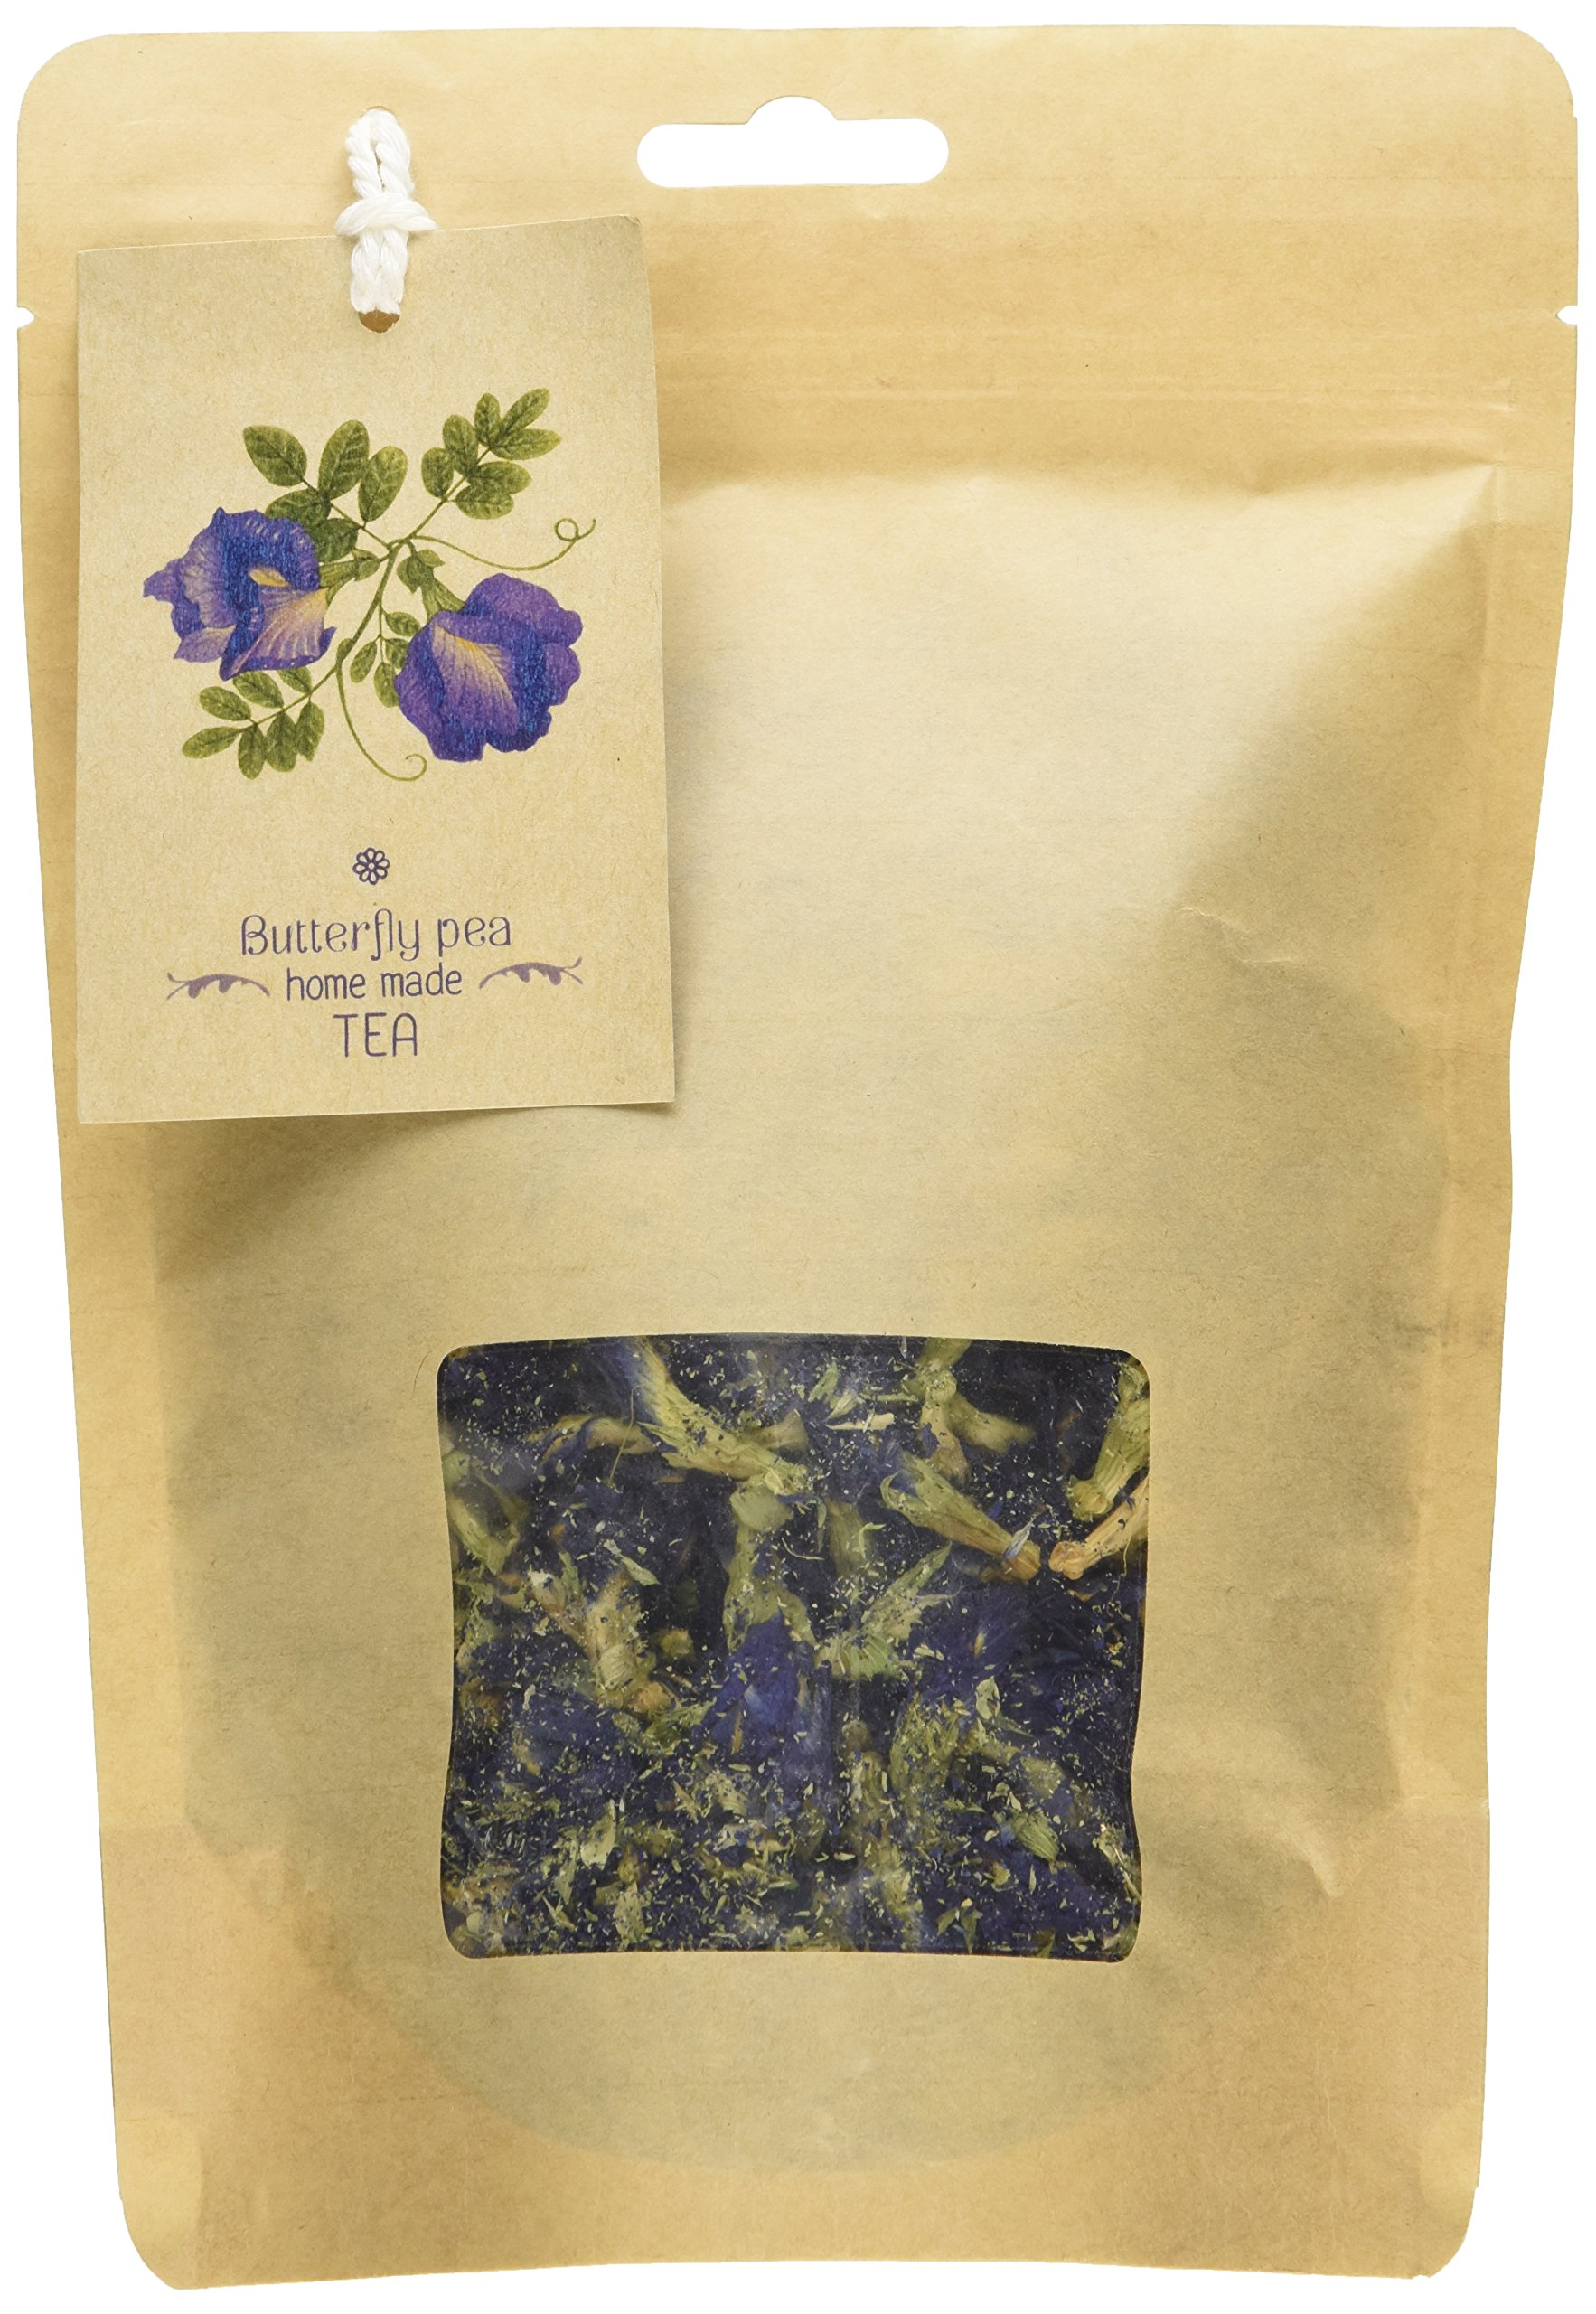 Herbal Dried Butterfly pea Flowers Herb Thai&Pandanus Tea ,Blue Tea, Thai Herbals -Take it with honey and lemon to enjoy its awesome taste and revel in the tasteful experience it brings